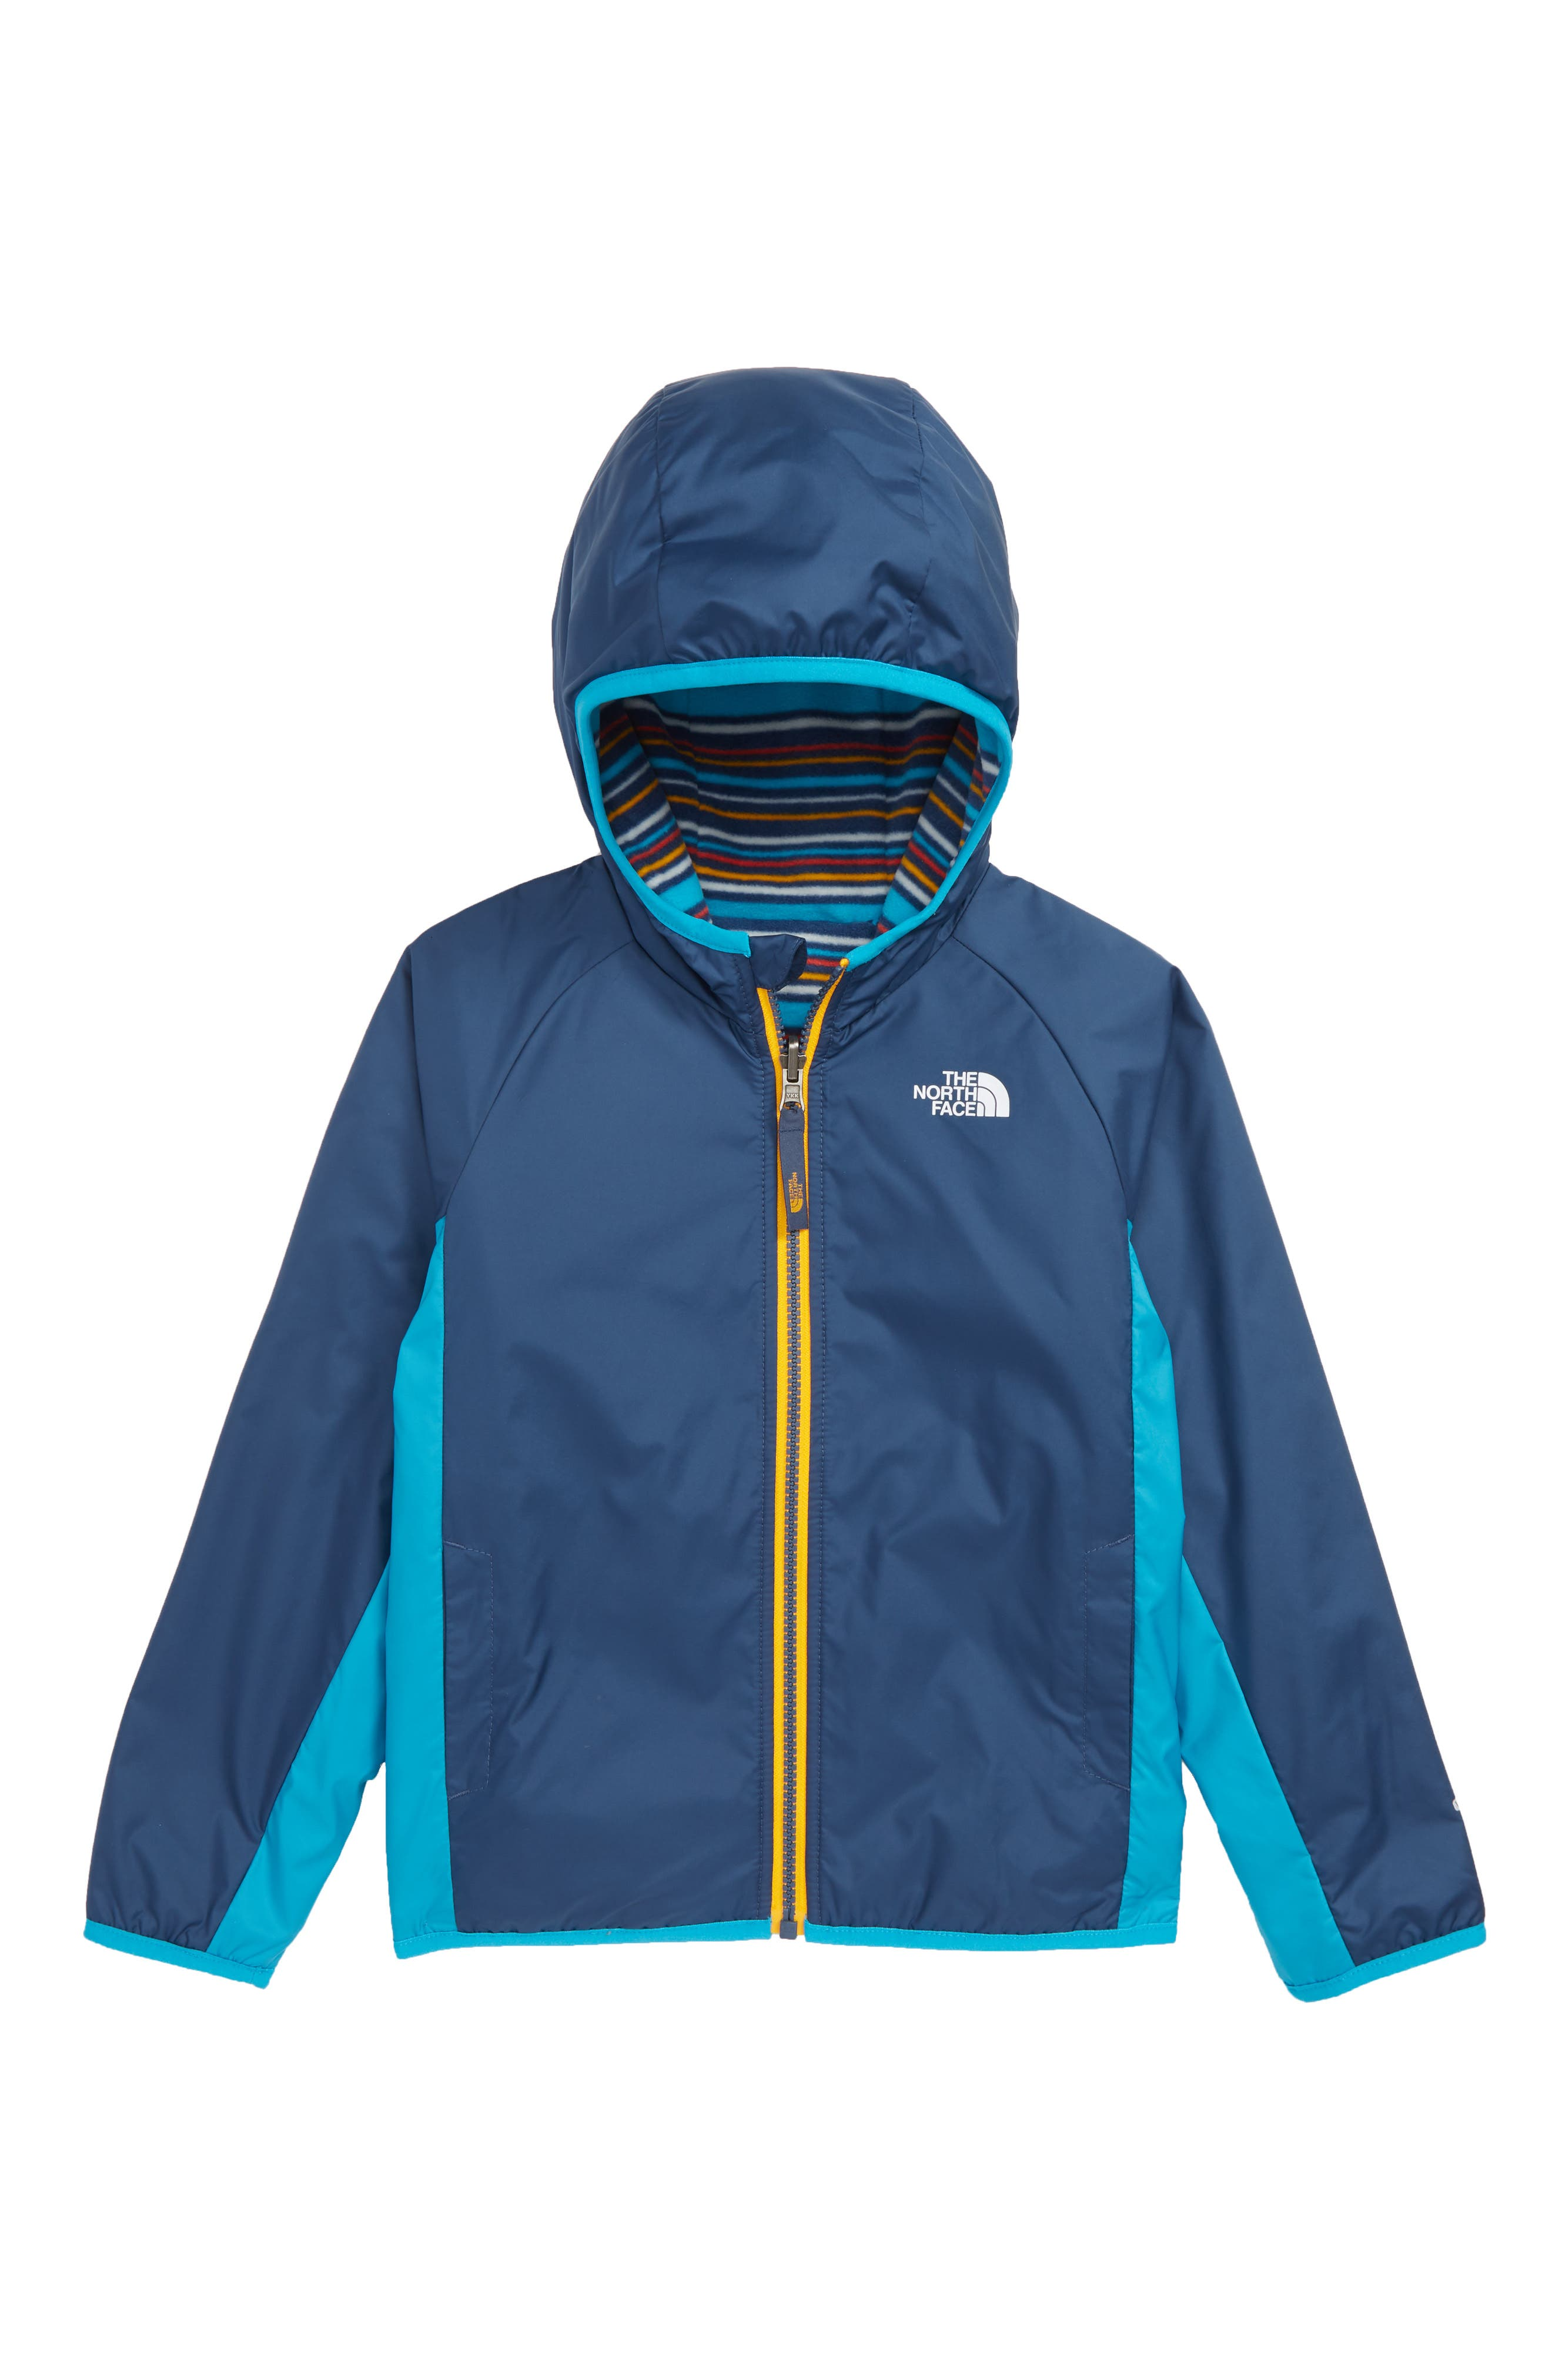 THE NORTH FACE, Breezeway Reversible Water Repellent Jacket, Main thumbnail 1, color, SHADY BLUE